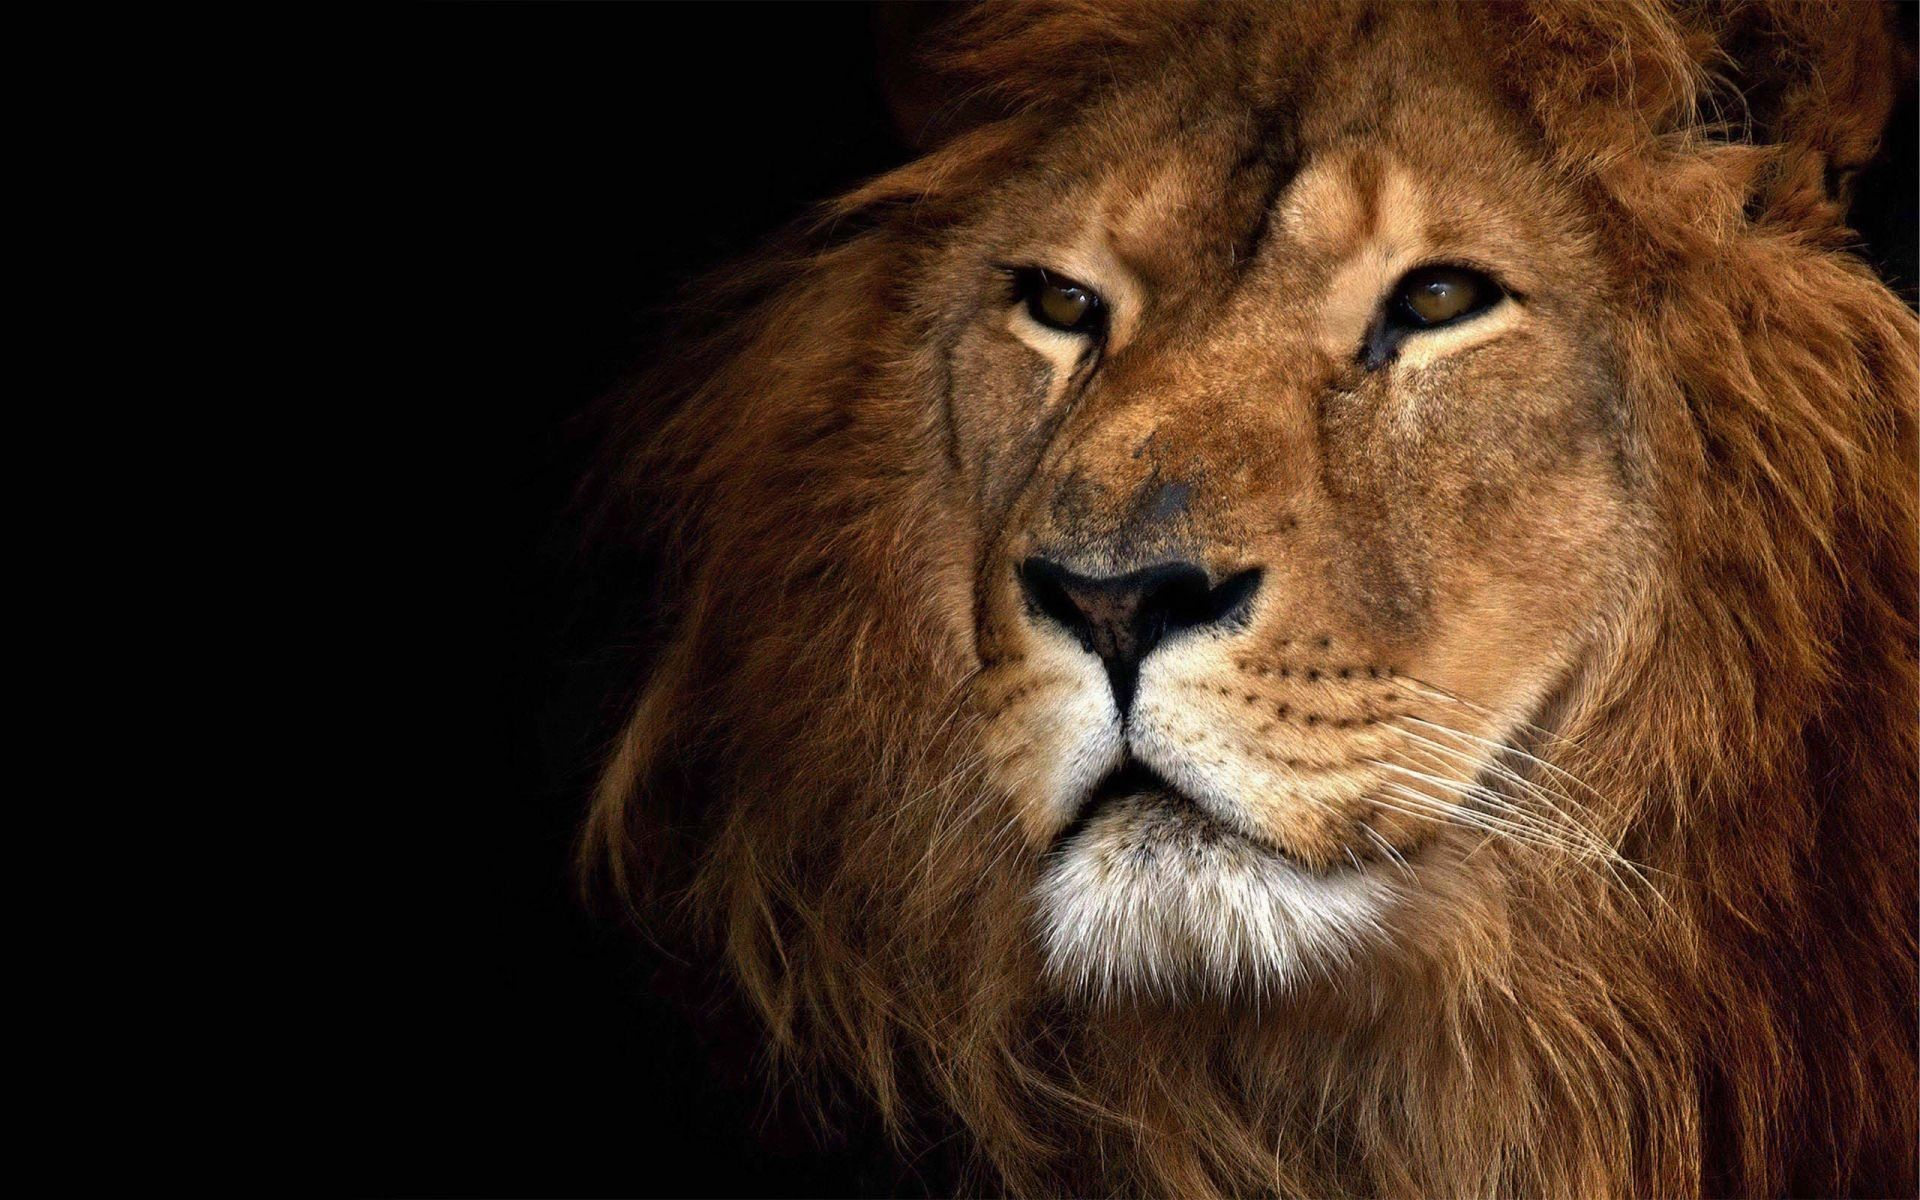 Lion Face Wallpaper | HD Animals and Birds Wallpaper Free Download …